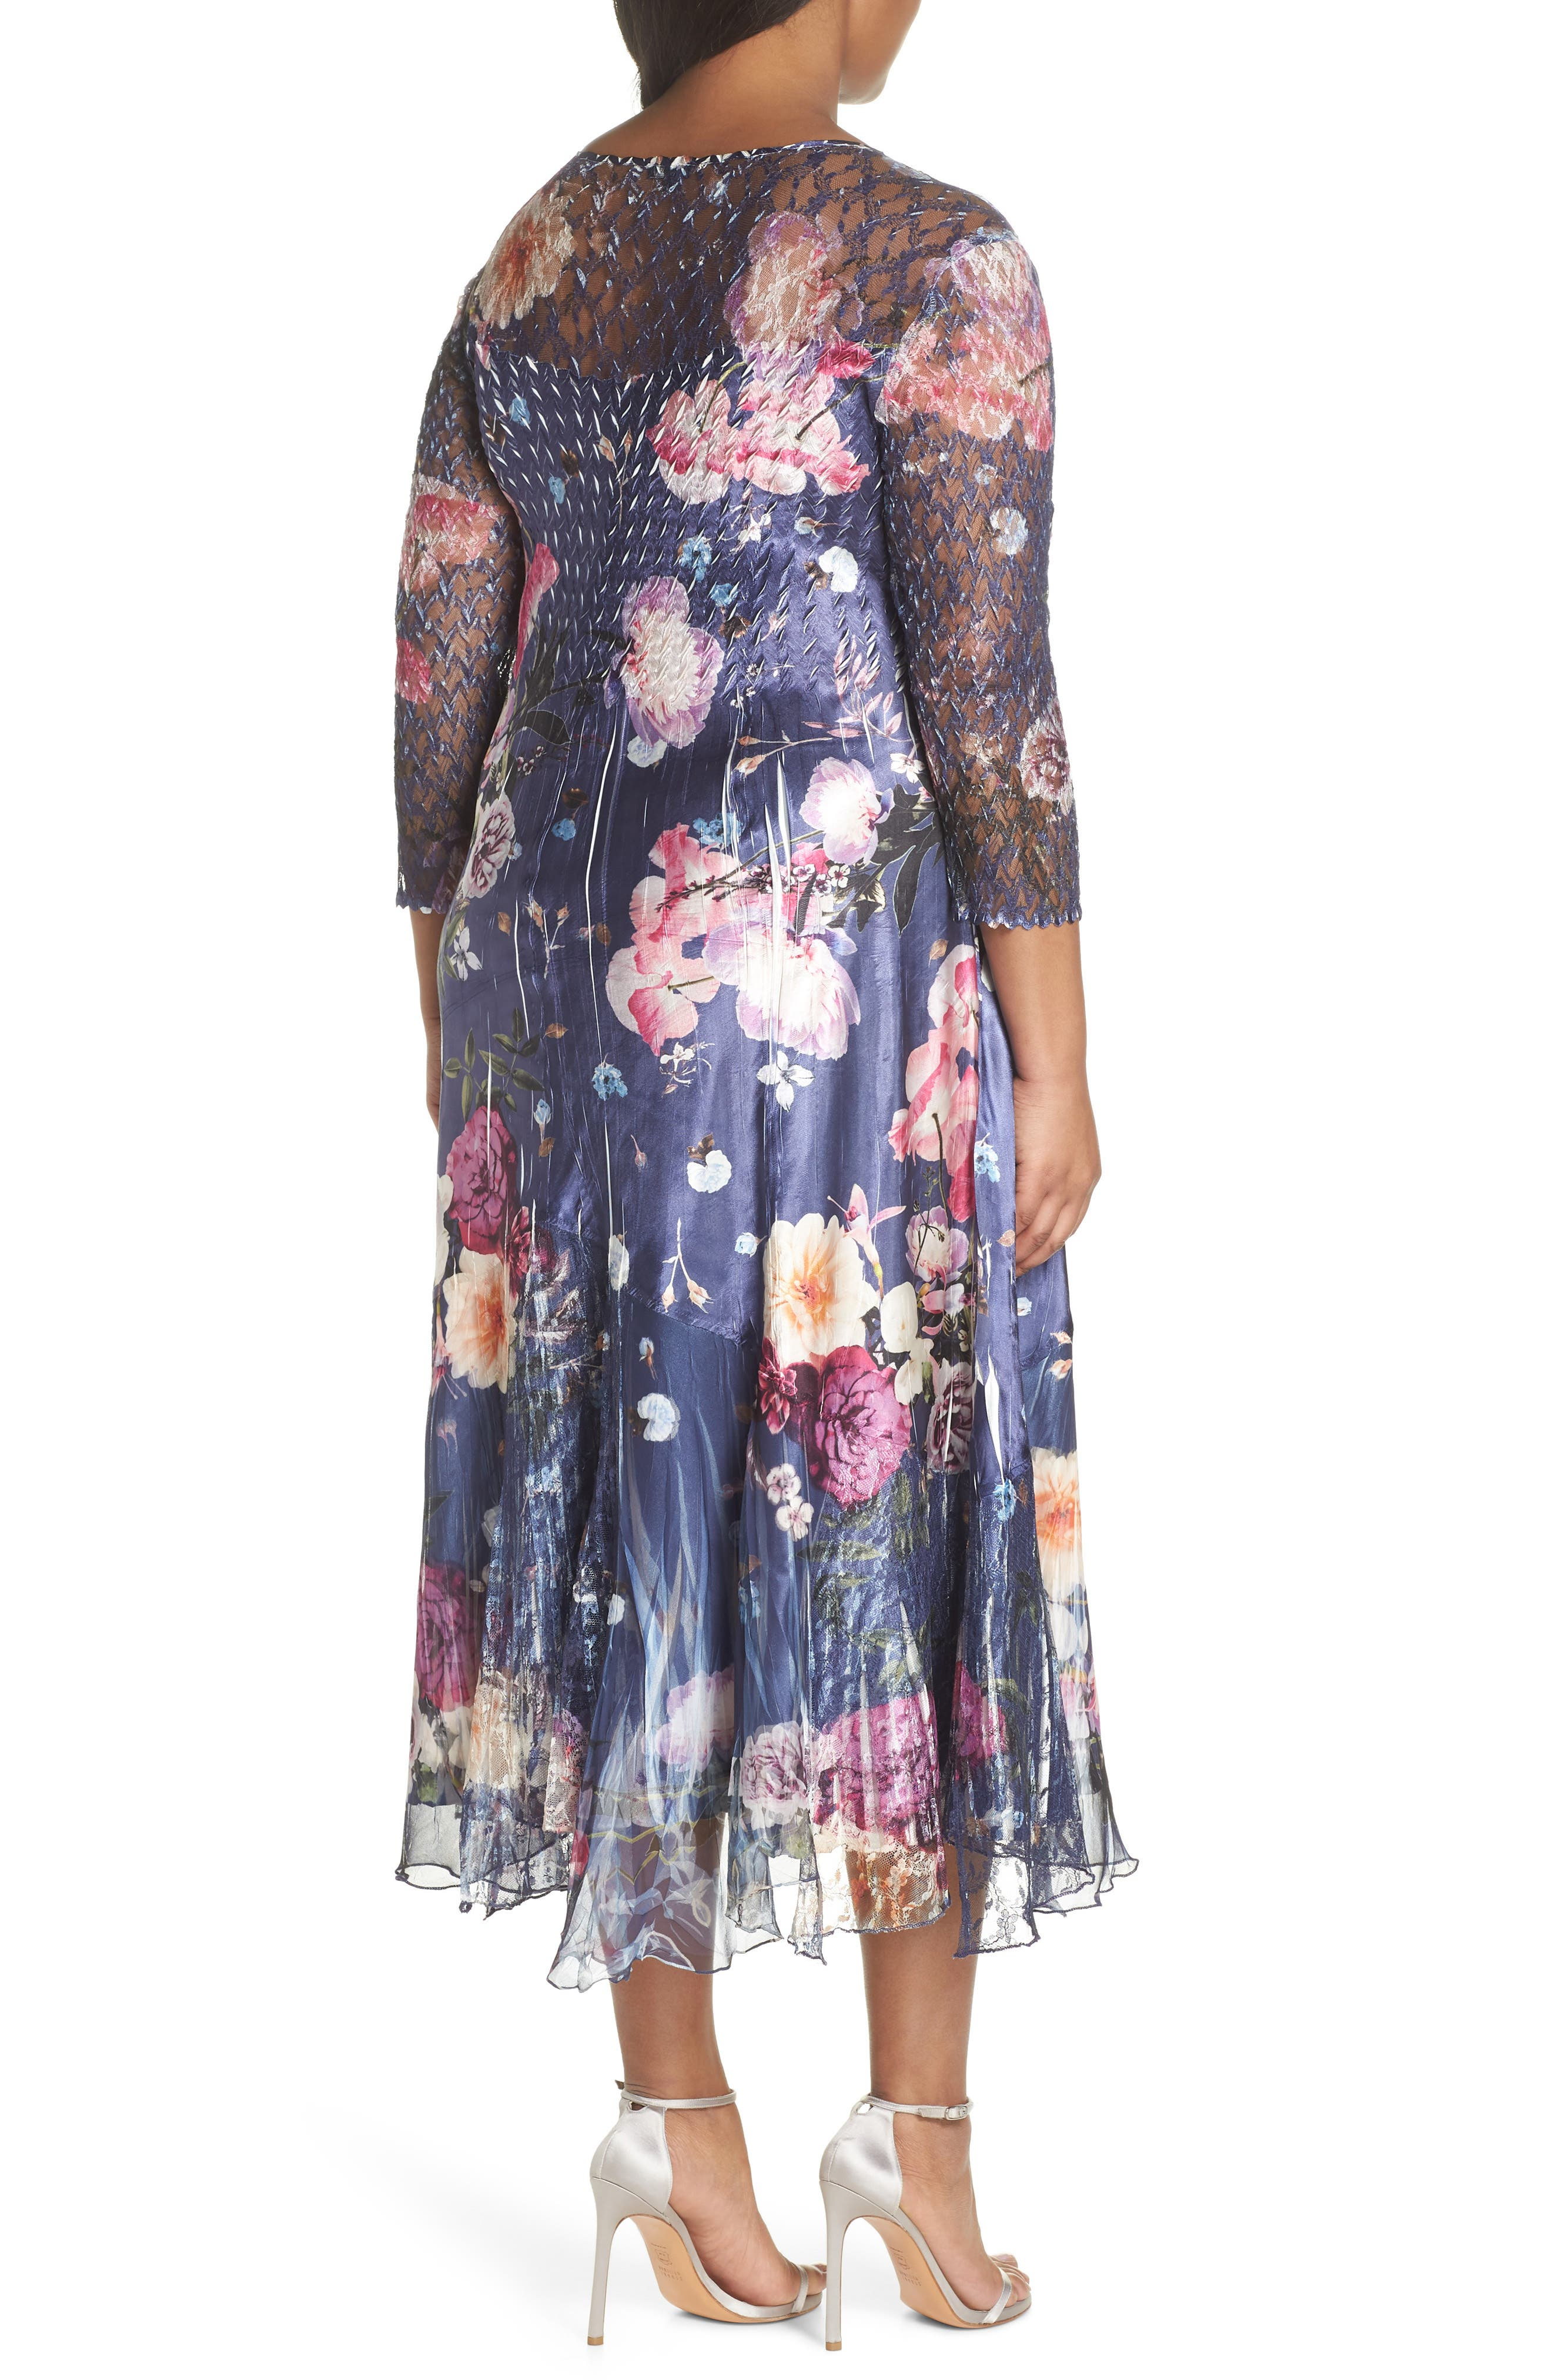 Koramov Floral Print Lace Inset Dress,                             Alternate thumbnail 2, color,                             Velvet Bouquet